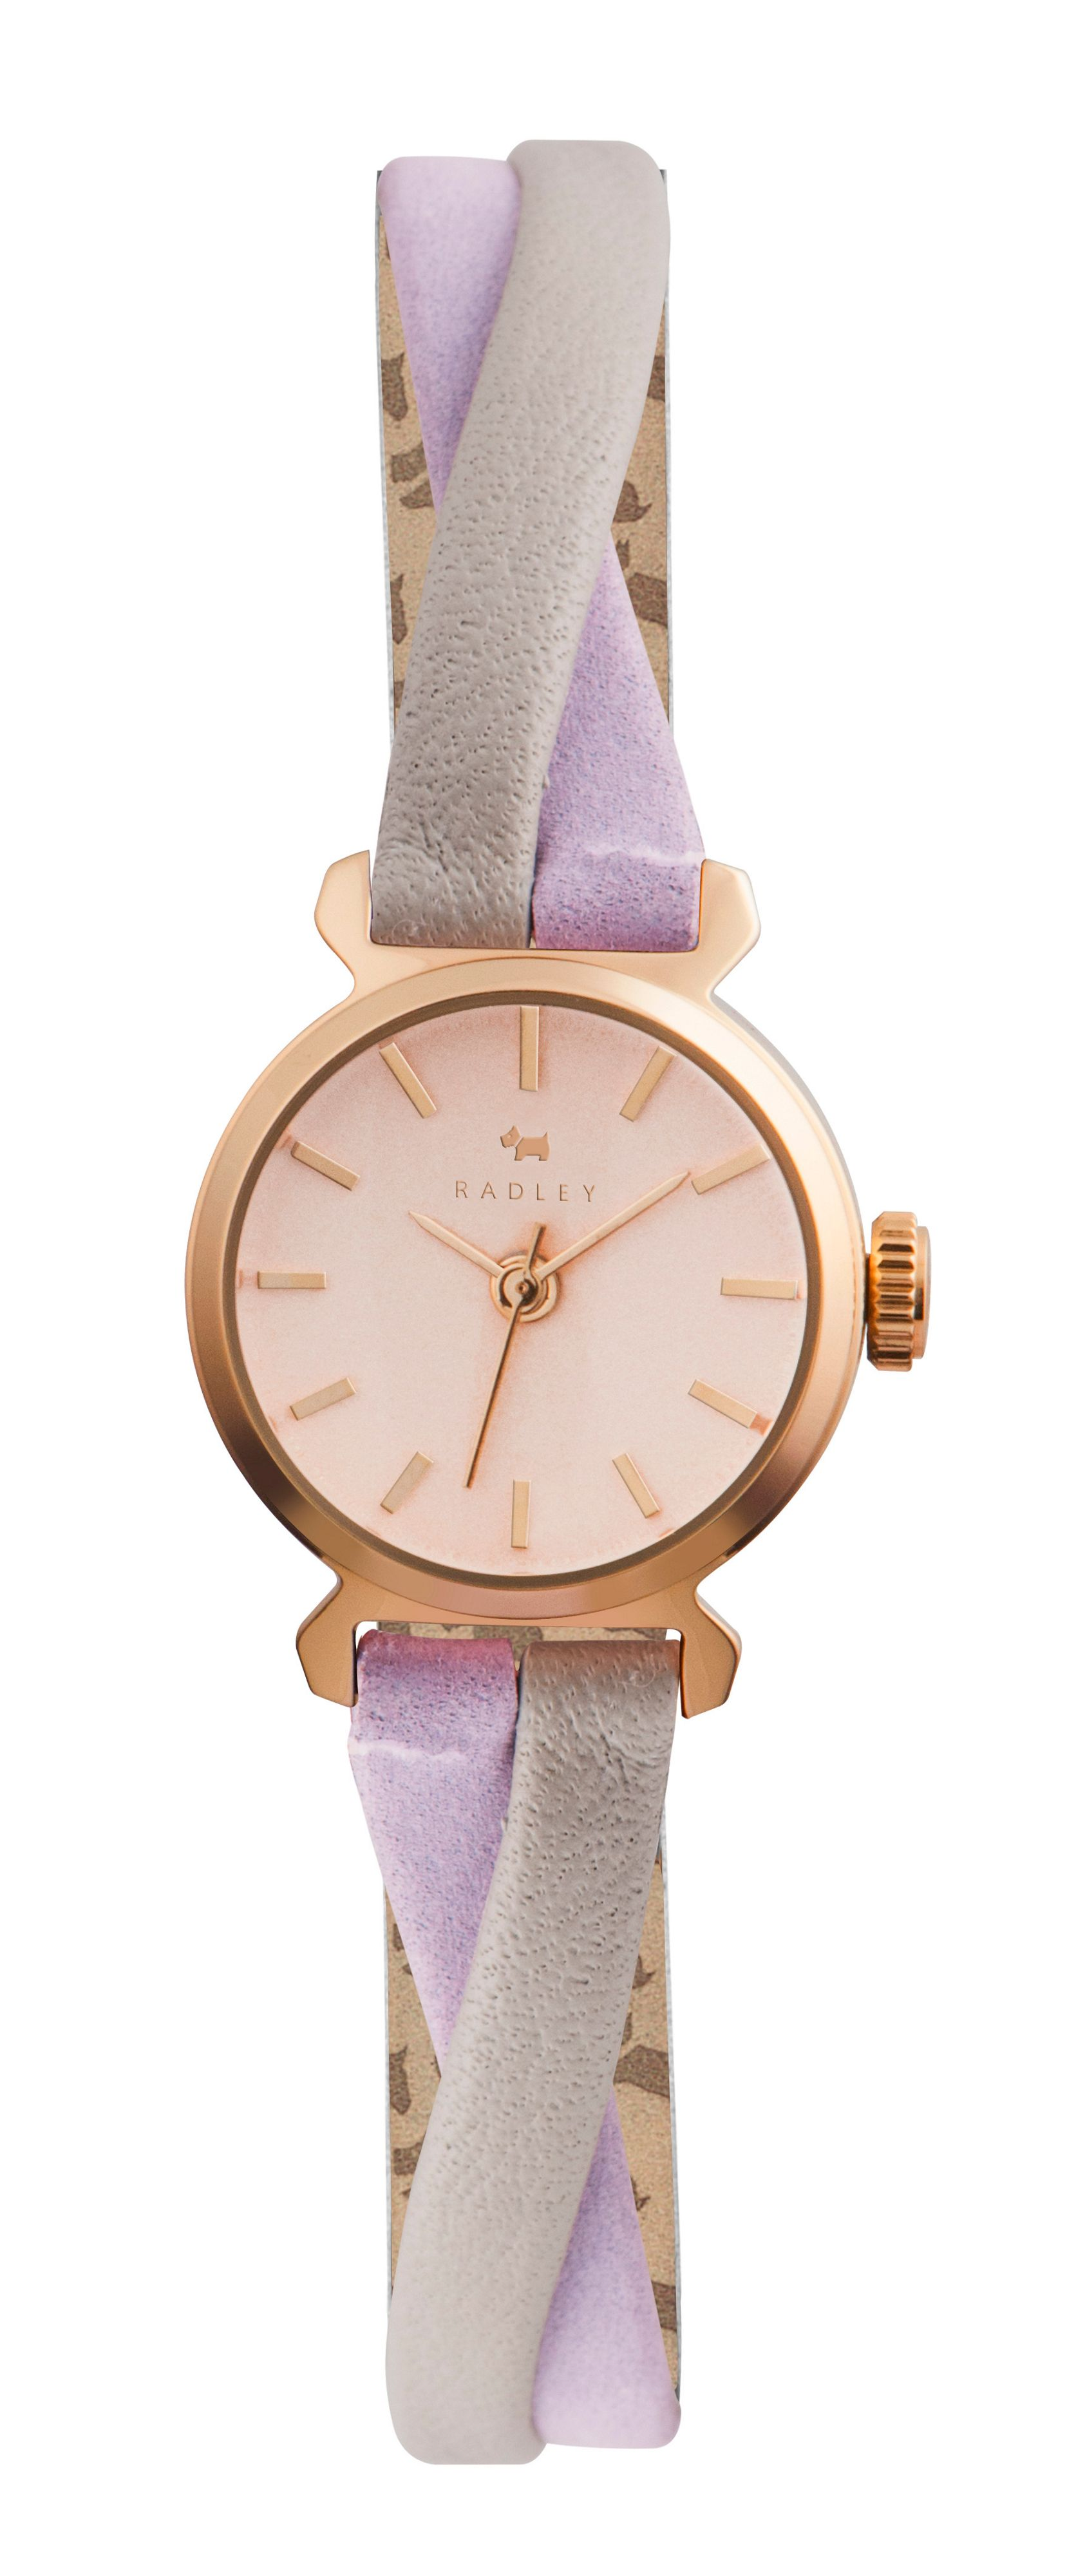 RY2256 Twisted vintage leather strap ladies watch